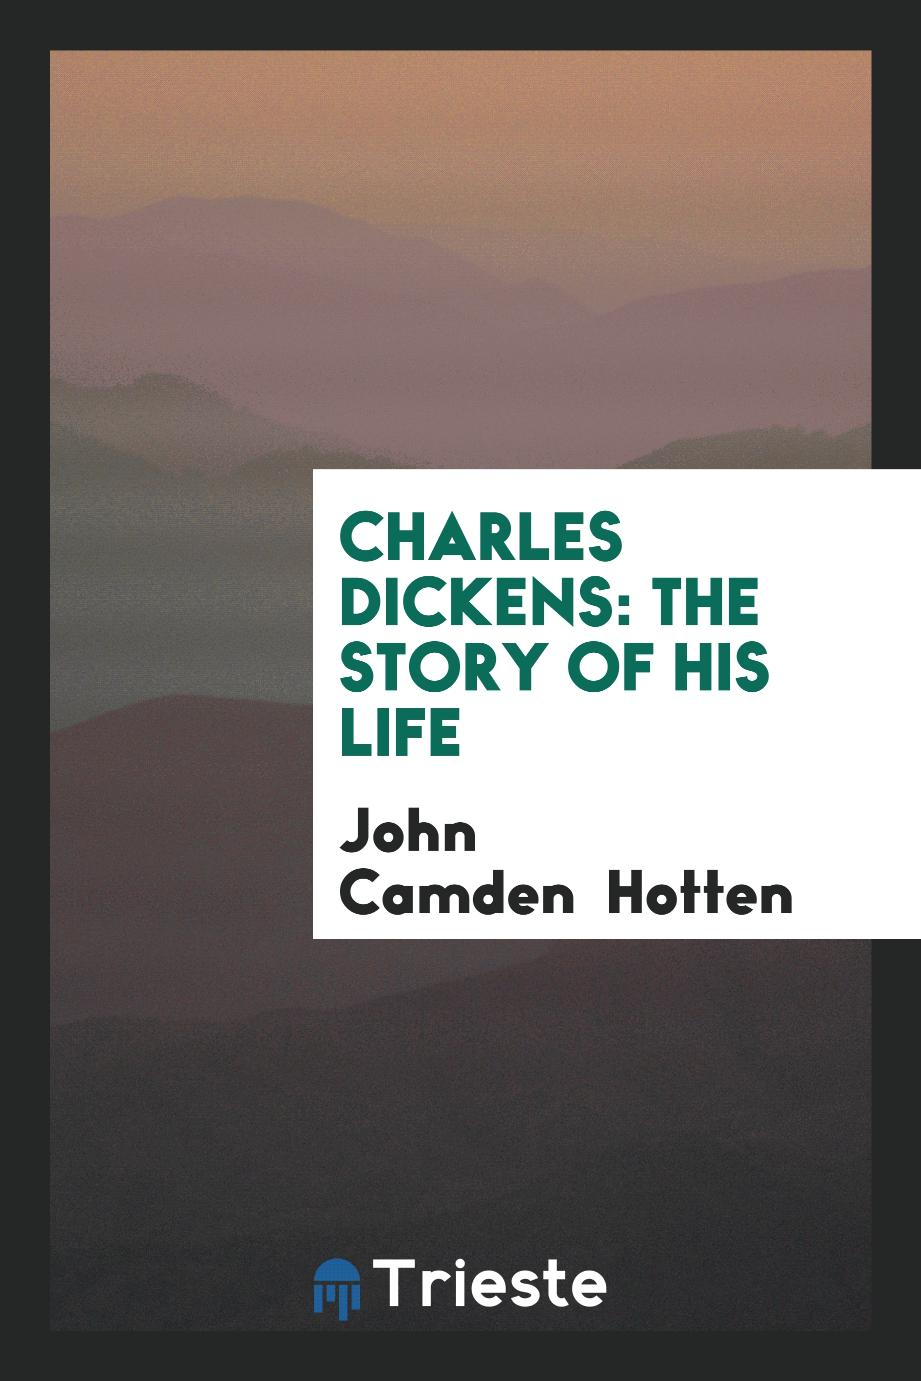 Charles Dickens: The Story of His Life